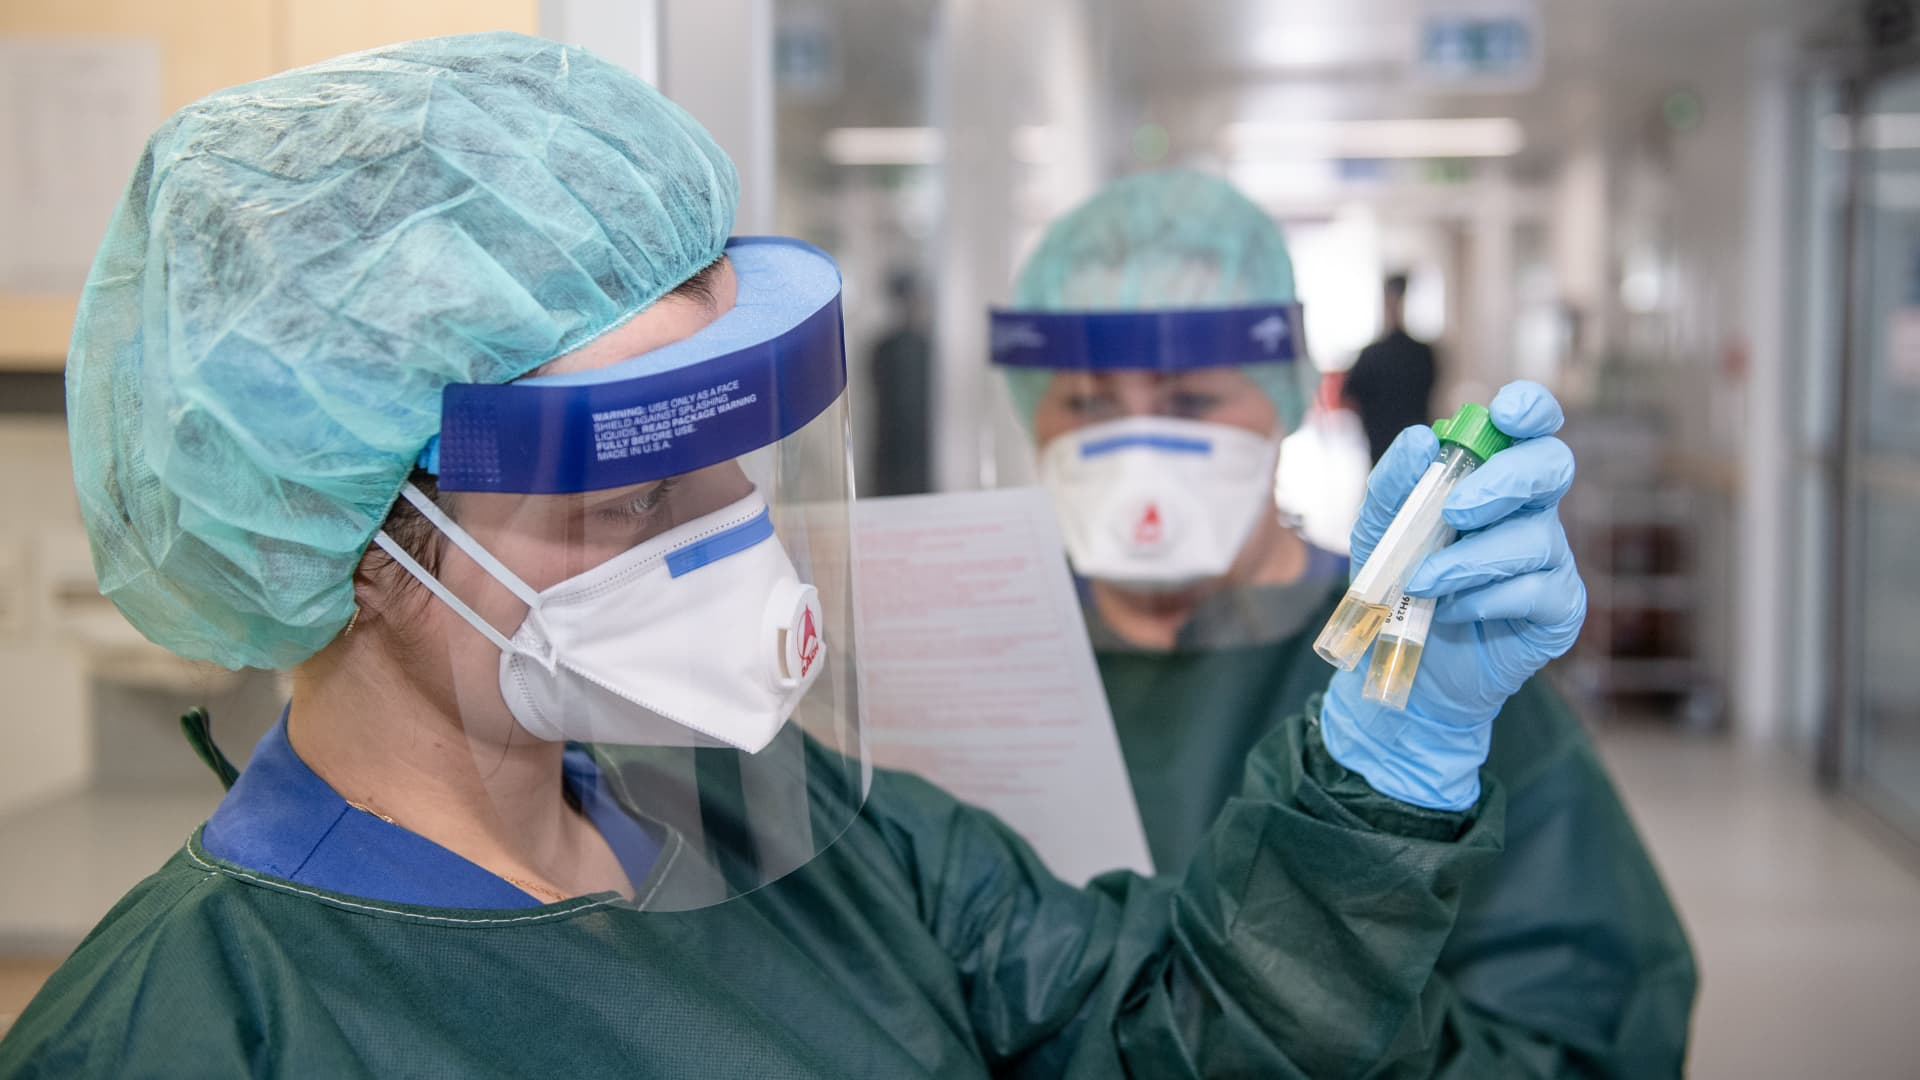 Kübra Yilmaz and Canan Emcan, nurses of the infection ward of the university hospital, in protective clothing and behind a breathing mask, look at two smear tubes and the corresponding virology certificate. In Essen, the city and university hospital feel well prepared for patients infected with the novel coronavirus.